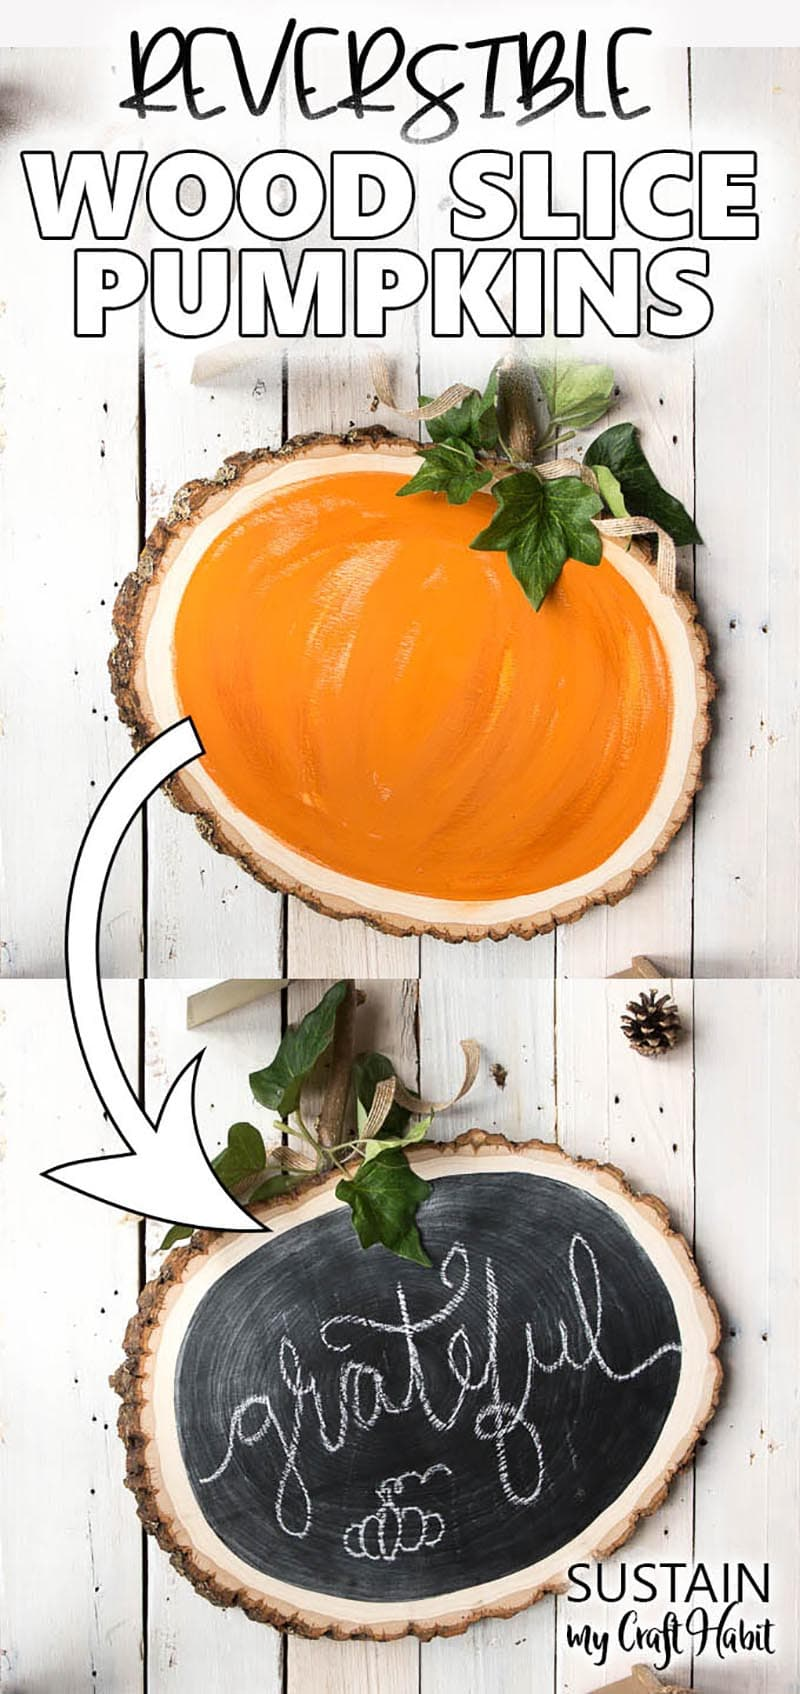 Time for some Quick and Easy DIY Fall Crafts to add a touch of Autumn Festivity to your Home Decor!